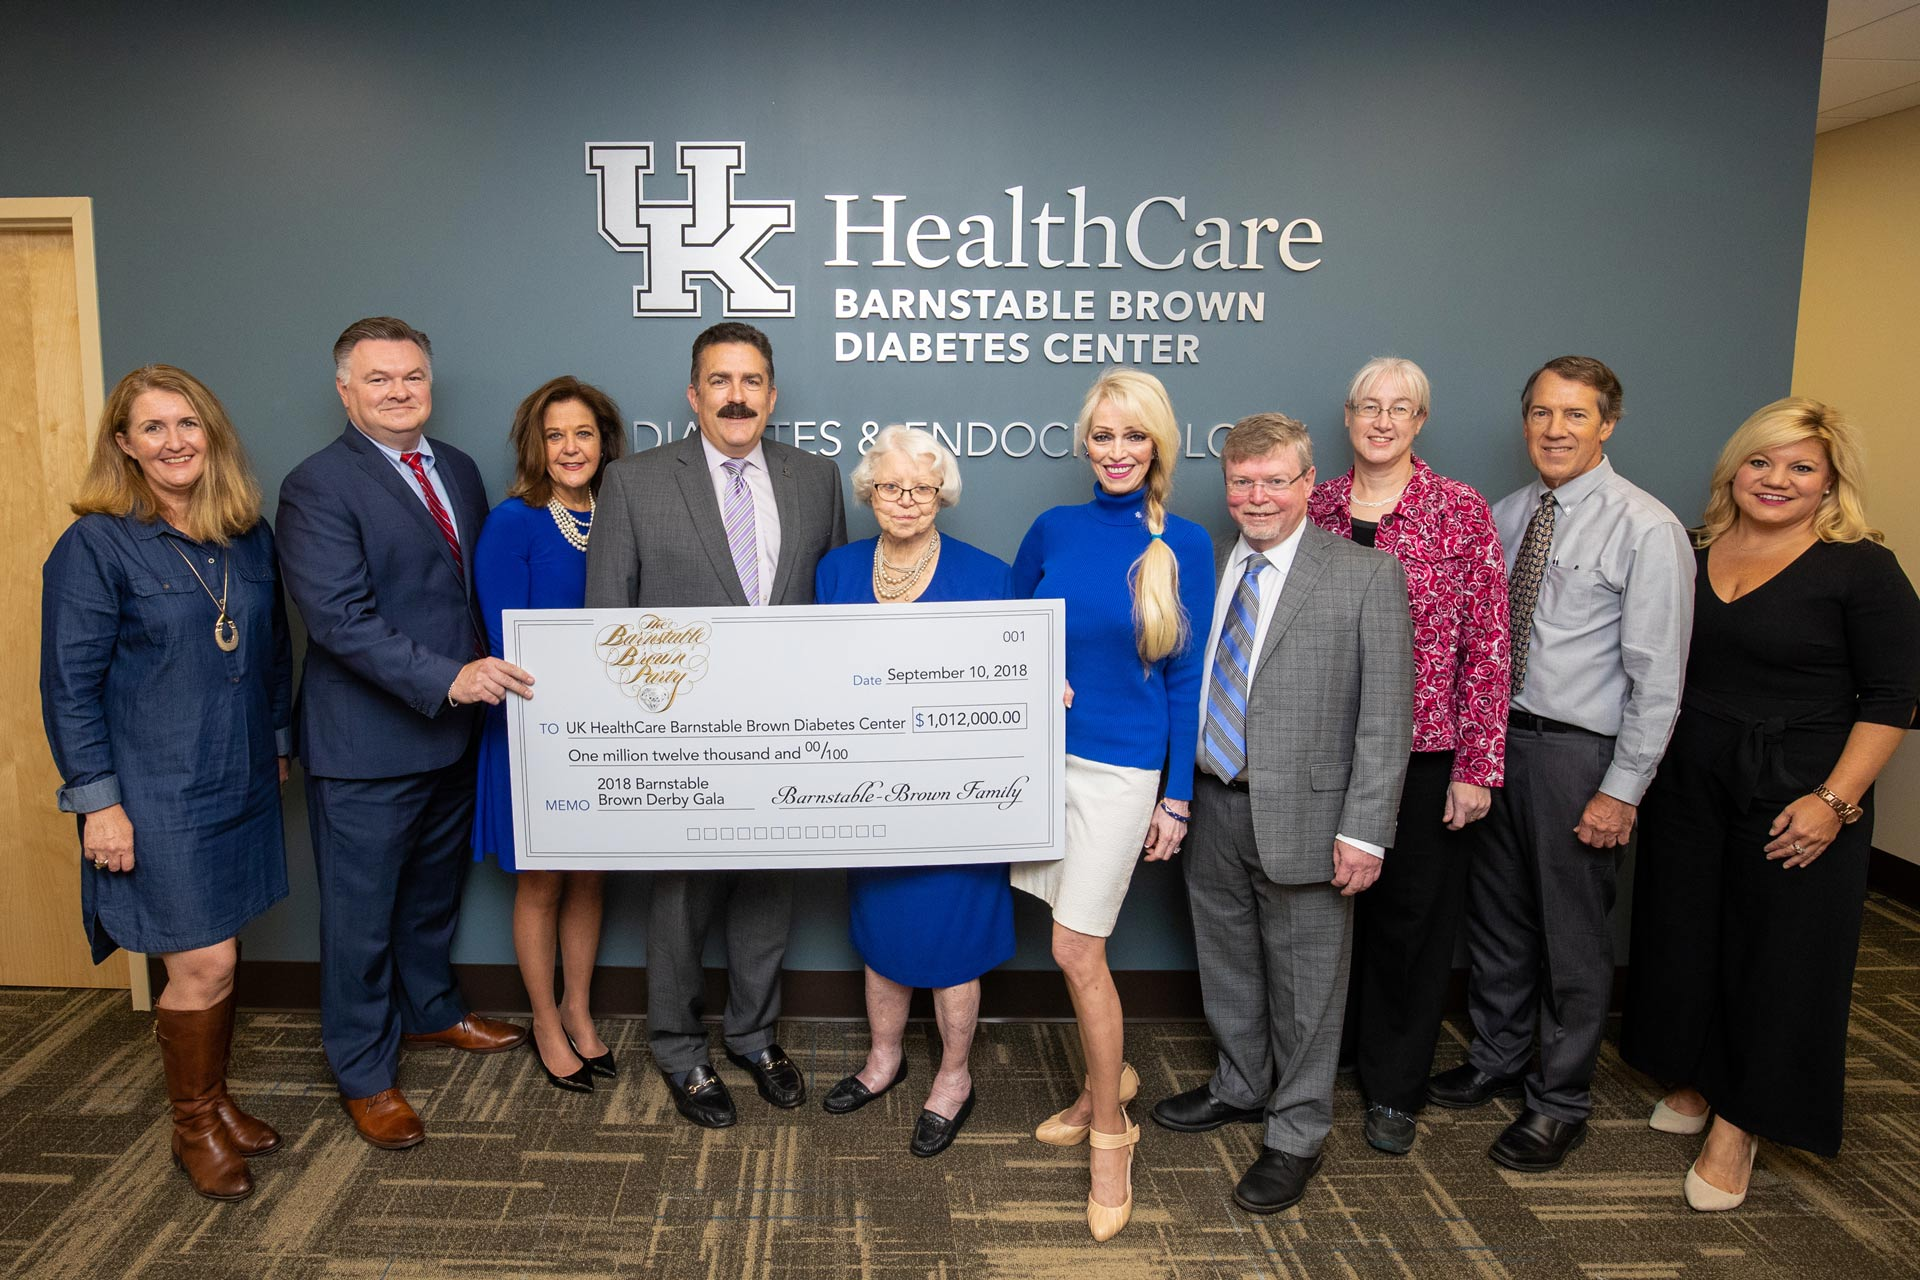 A check presentation inside the UK HealthCare Barnstable Brown Diabetes Center. Representatives of the Barnstable-Brownfamily present a check for $1.02 million, raised during the 2018 Barnstable-Brown Gala, to Dr. Mark Newman, Executive VP of Health Affairs at UK HealthCare.